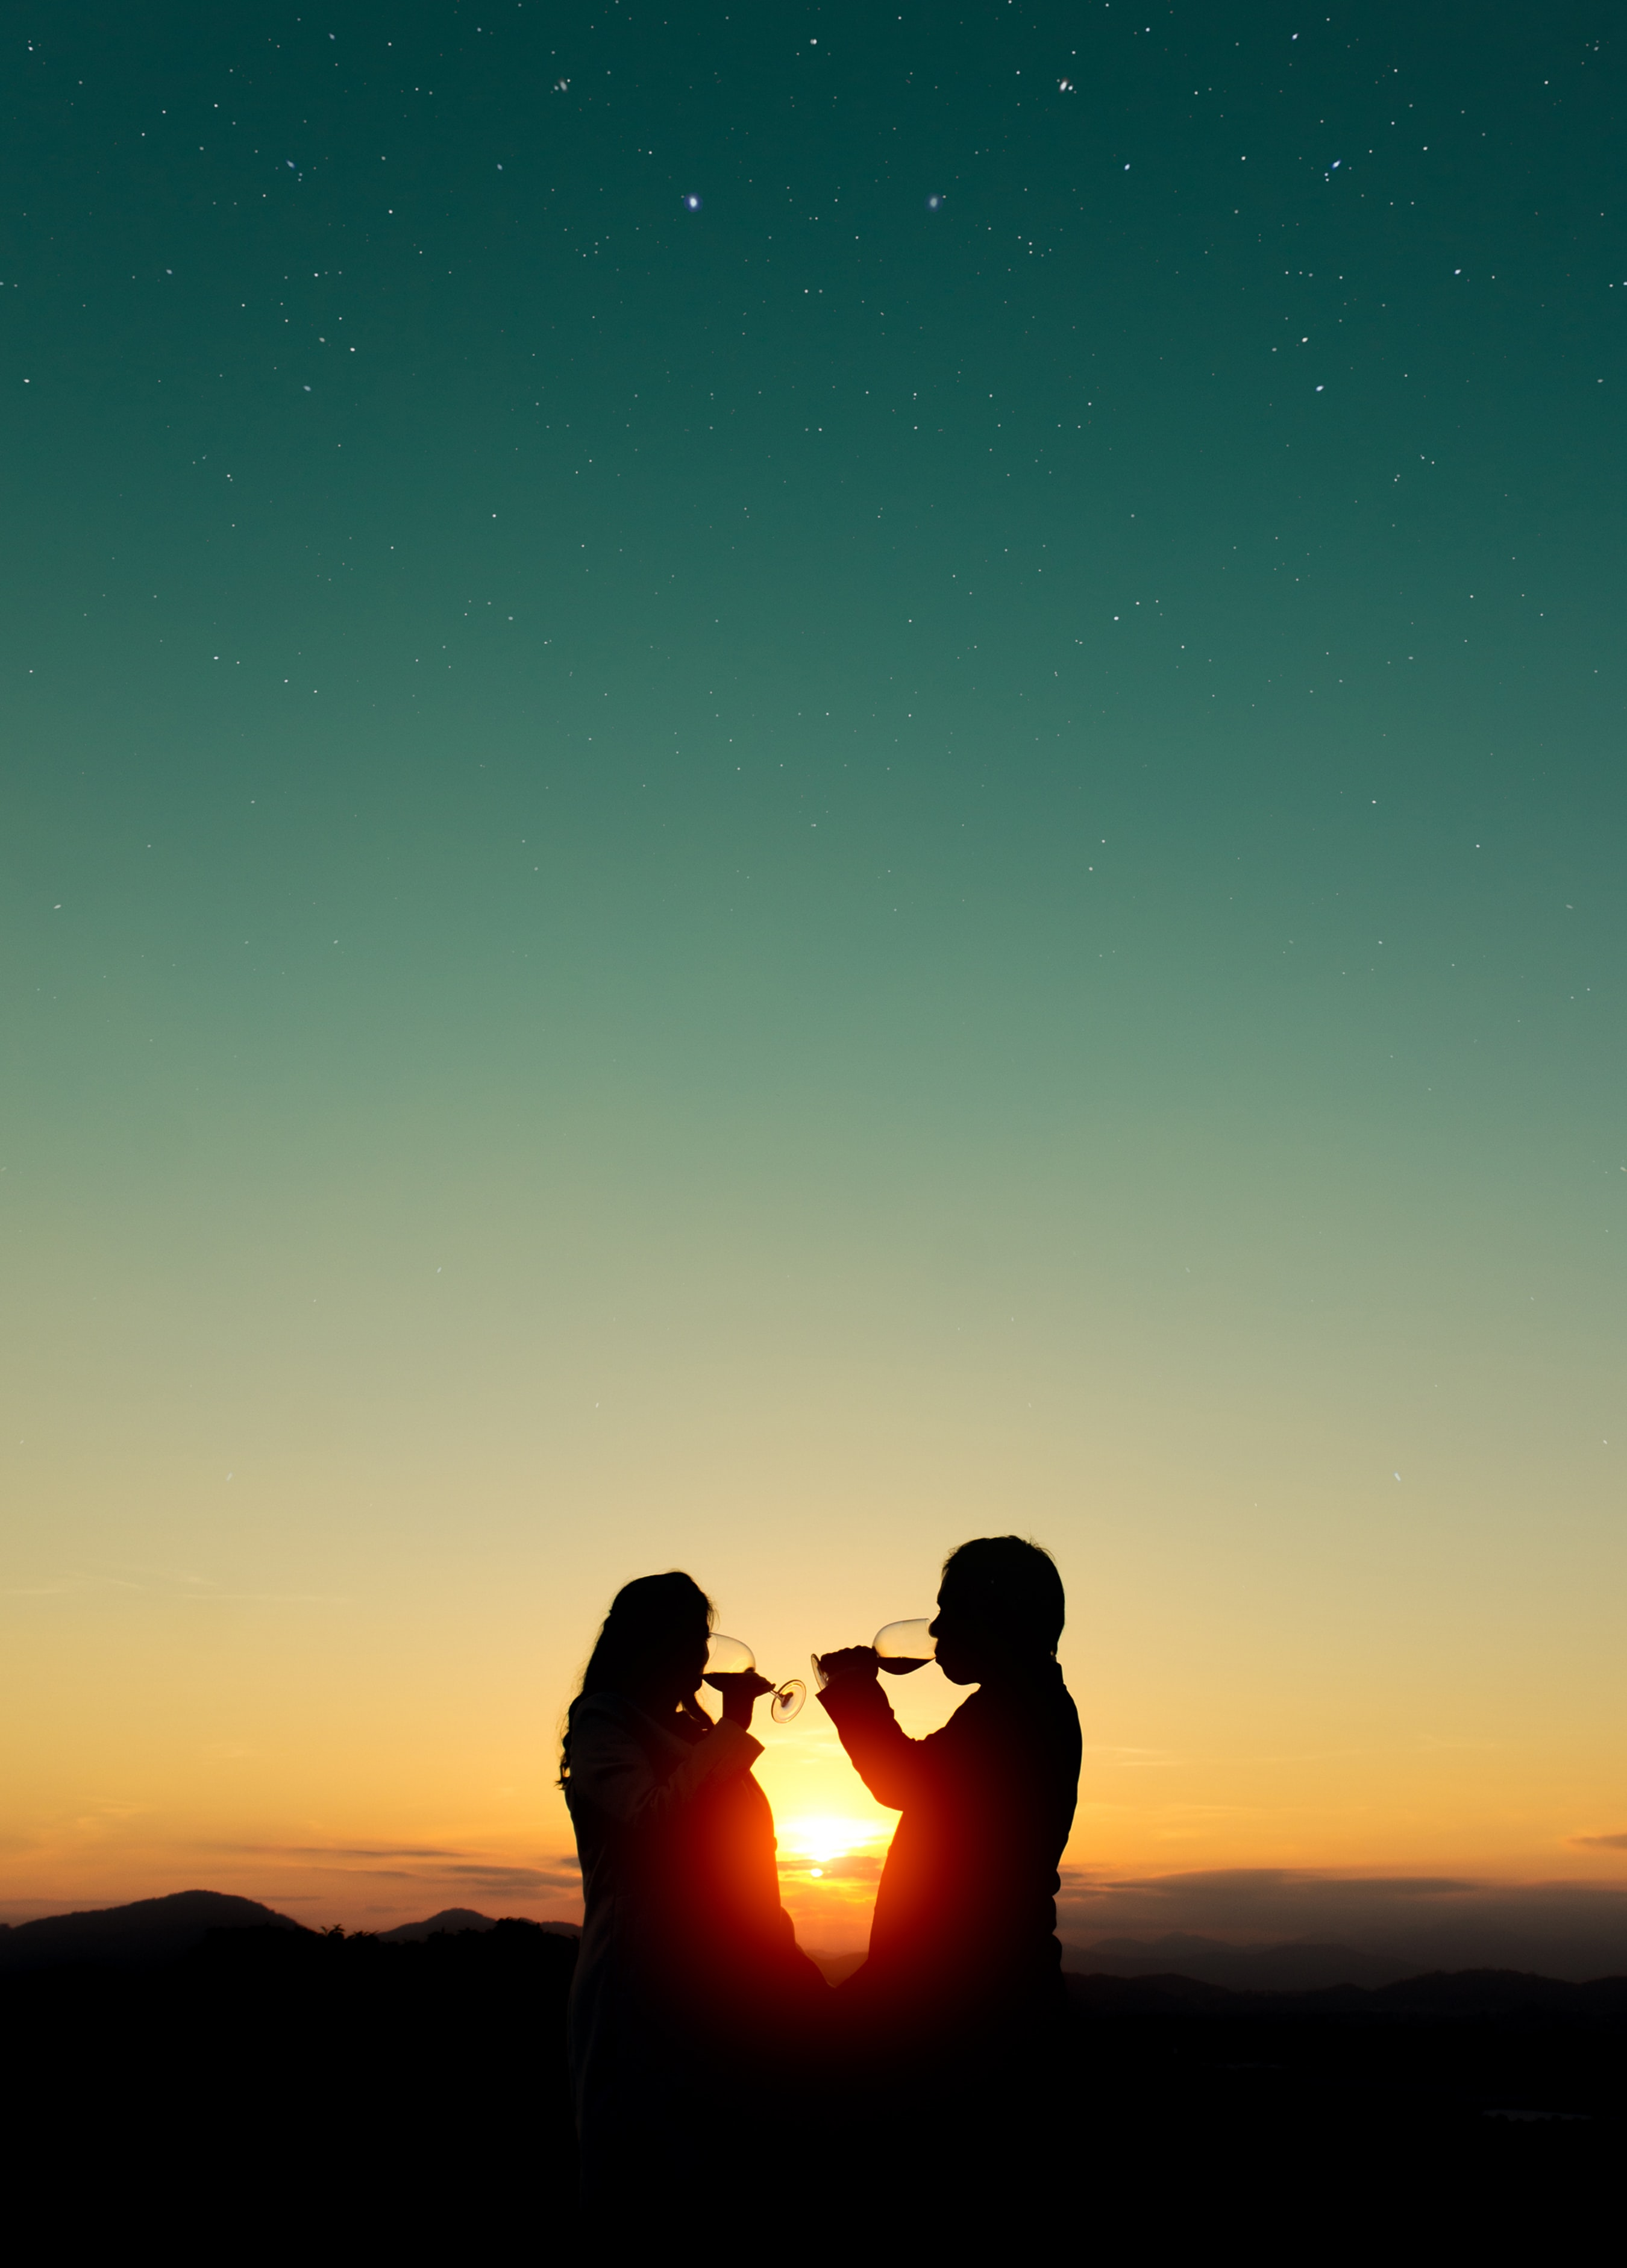 silhouette photo of man and woman holding wine glasses